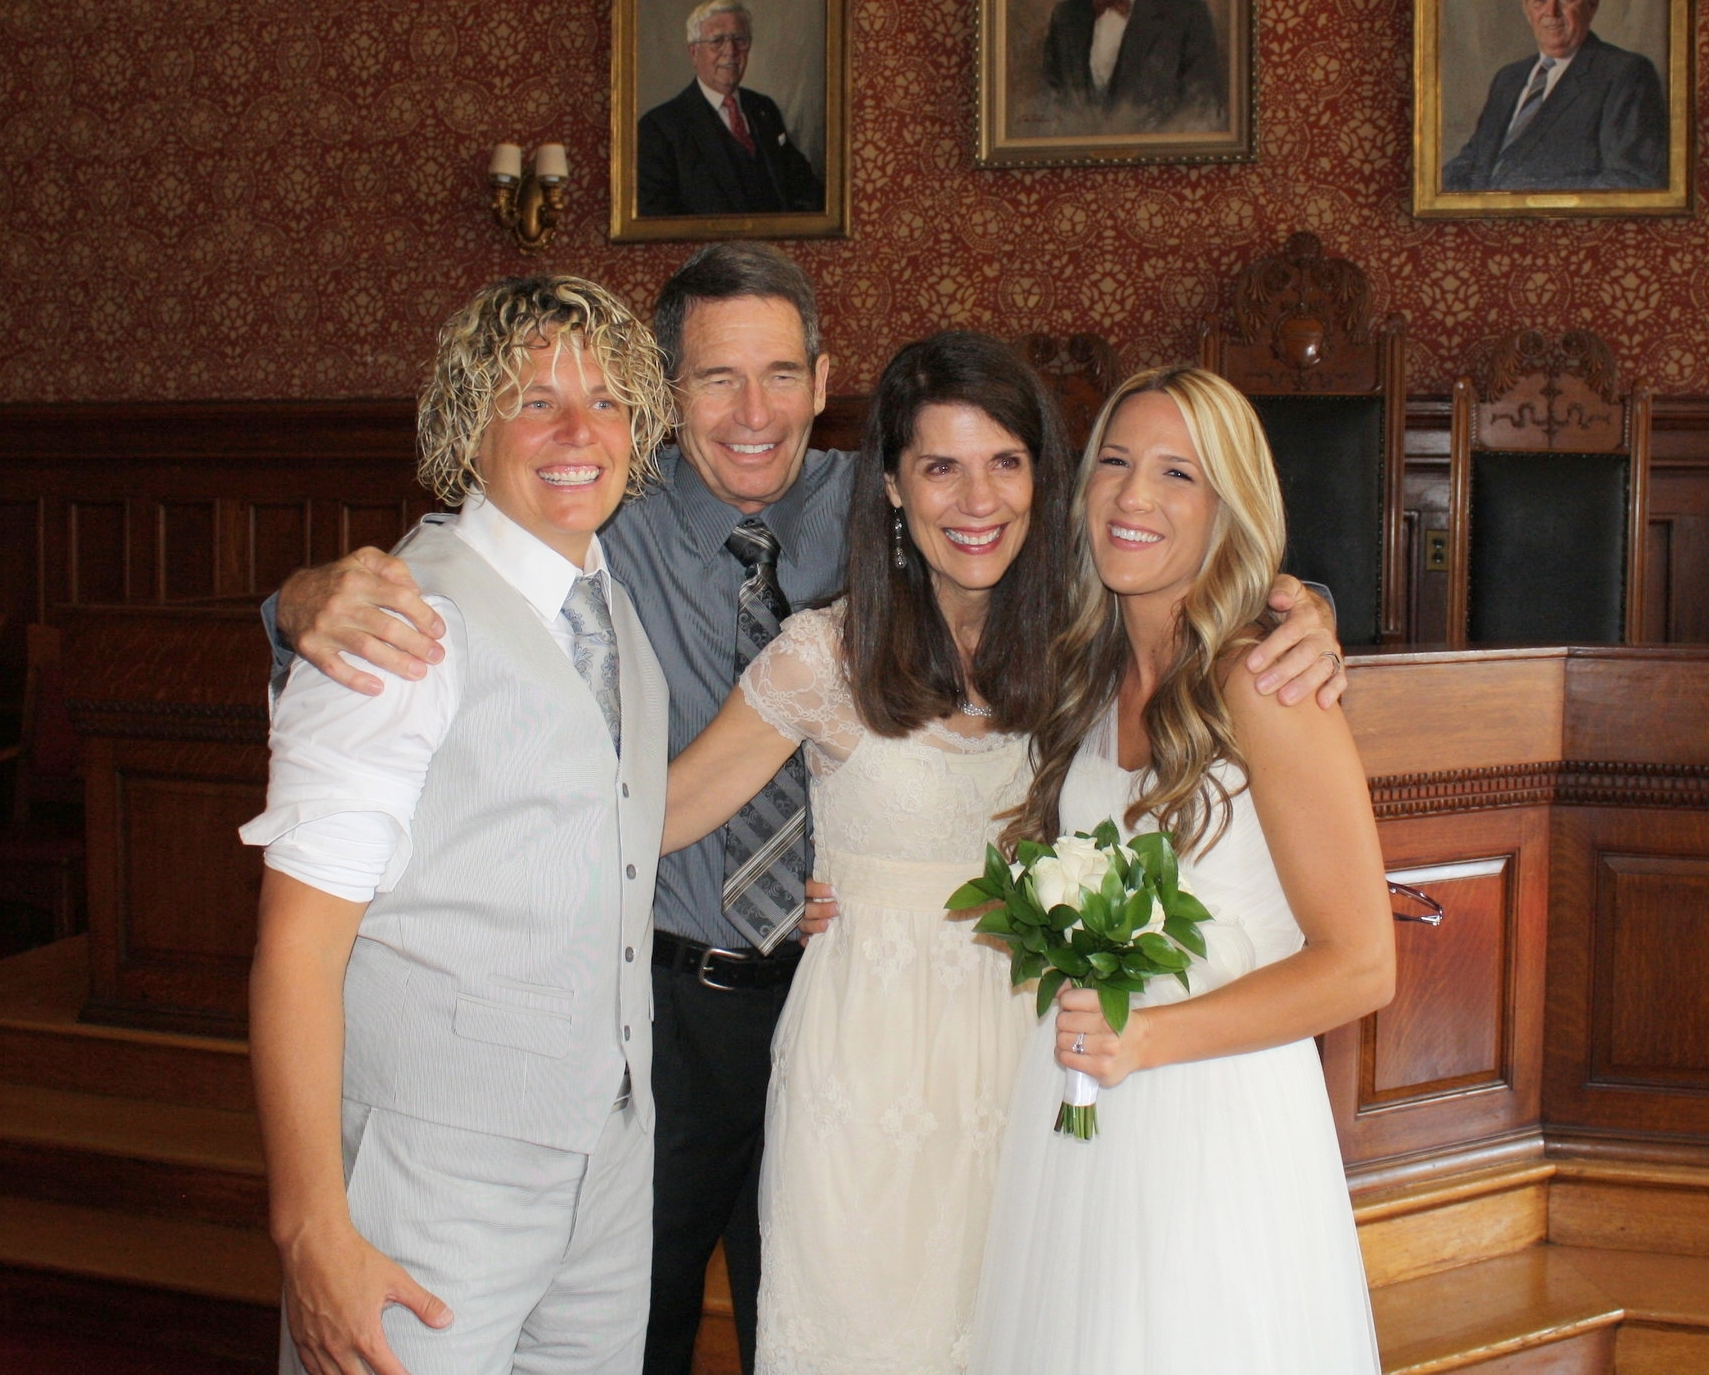 I am so happy to call these lovely people my parents! Love them!